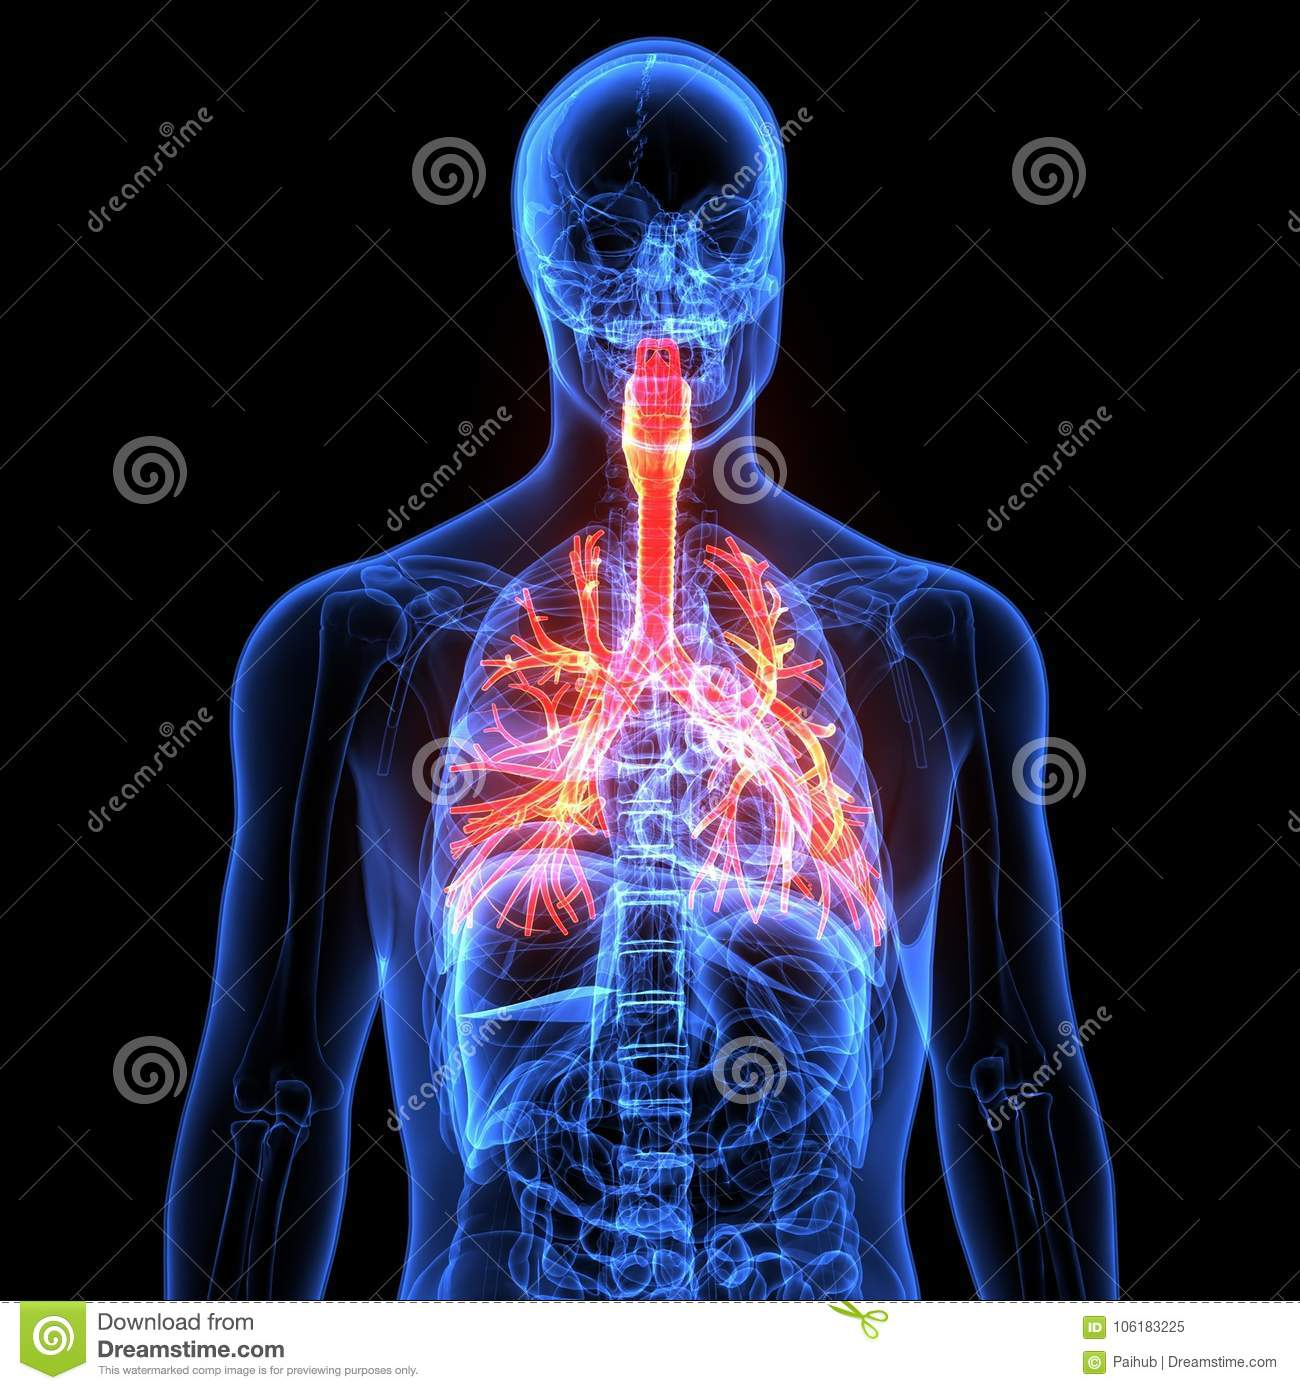 Male Anatomy Of Human Respiratory System In X-ray. 3d Render ...